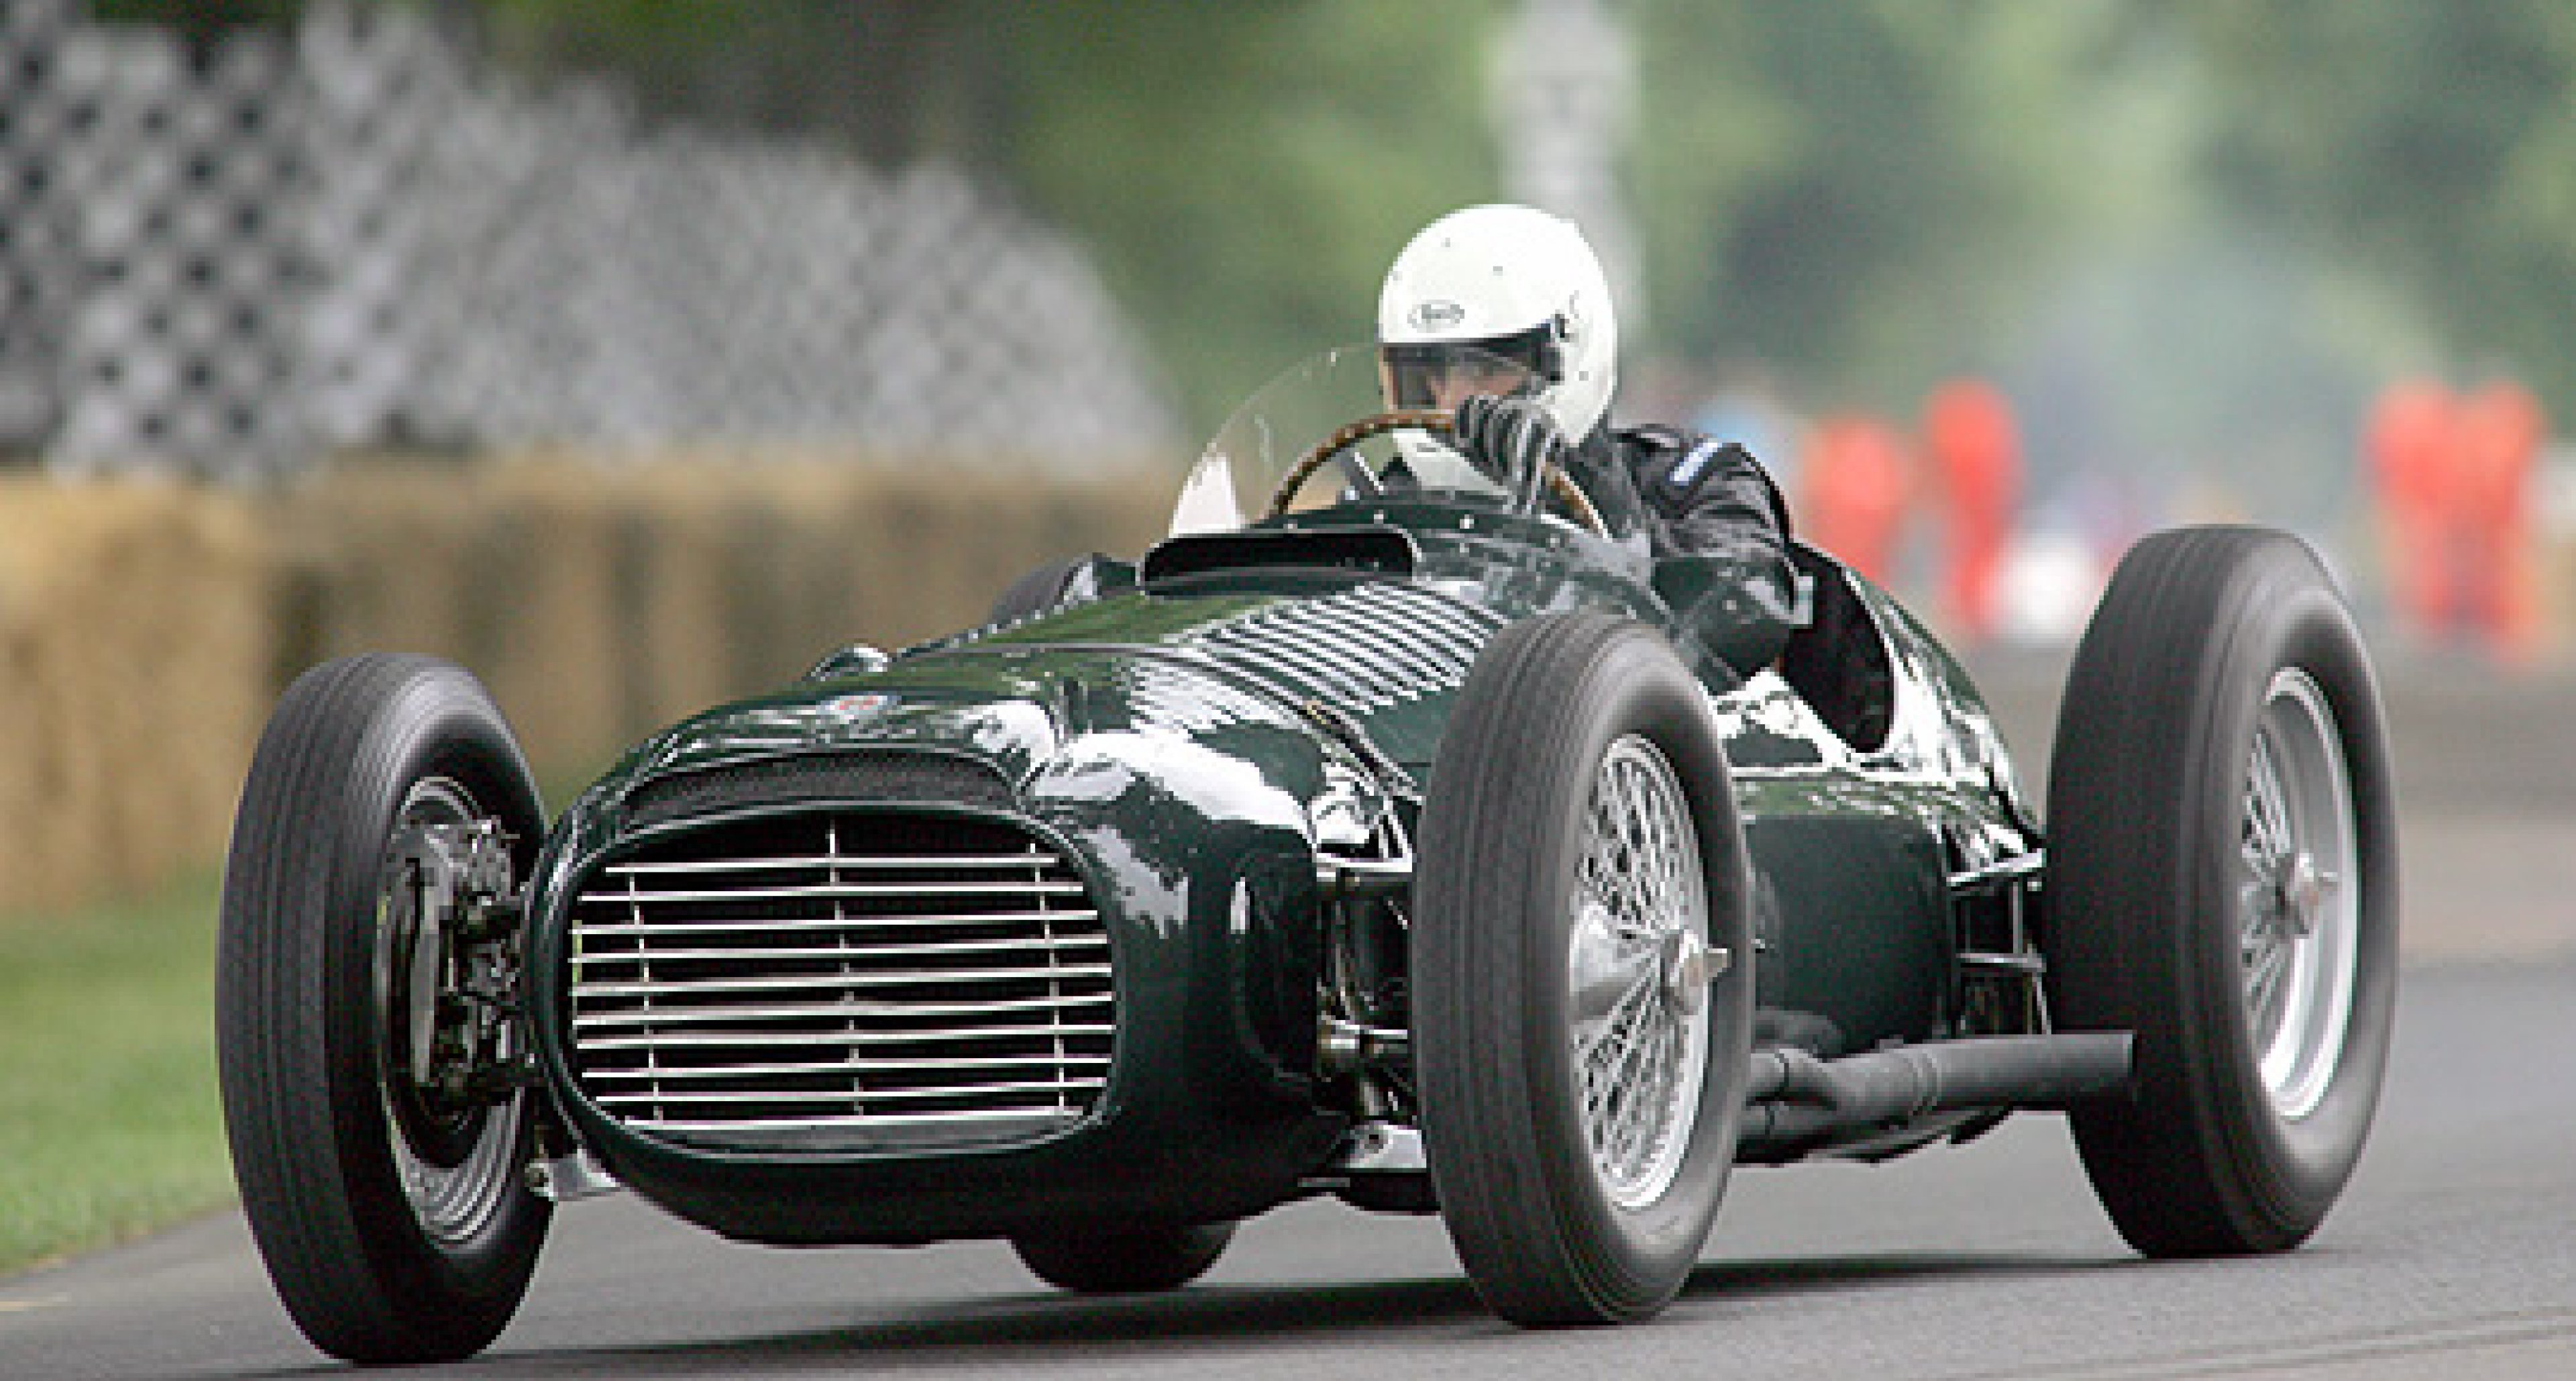 The Goodwood Festival of Speed  2006 - only a few days away